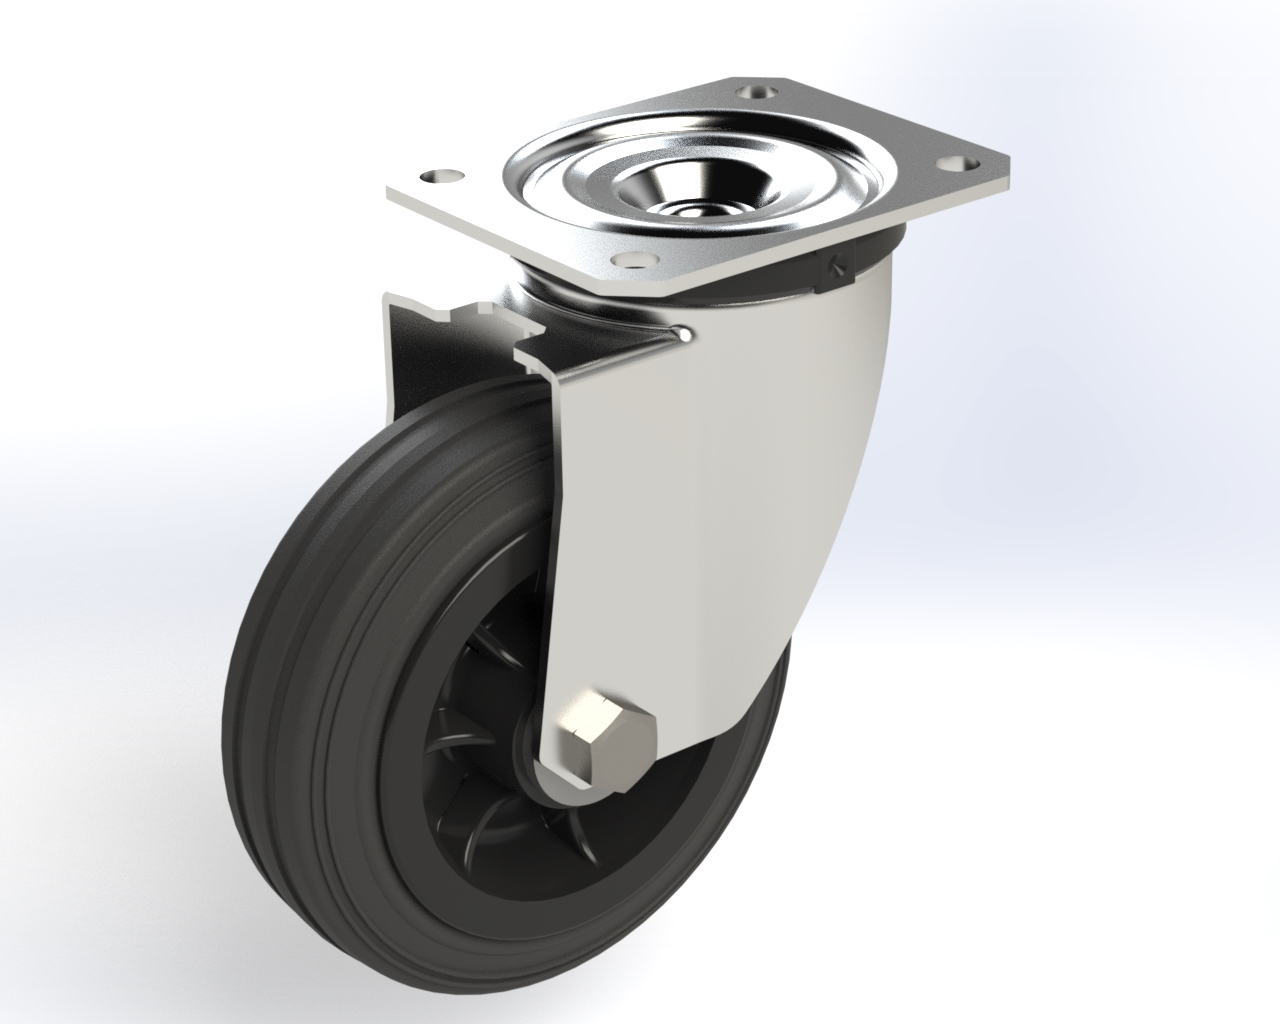 Series DZ roller bearing, Swivel castors M22 with brake, plate fitting